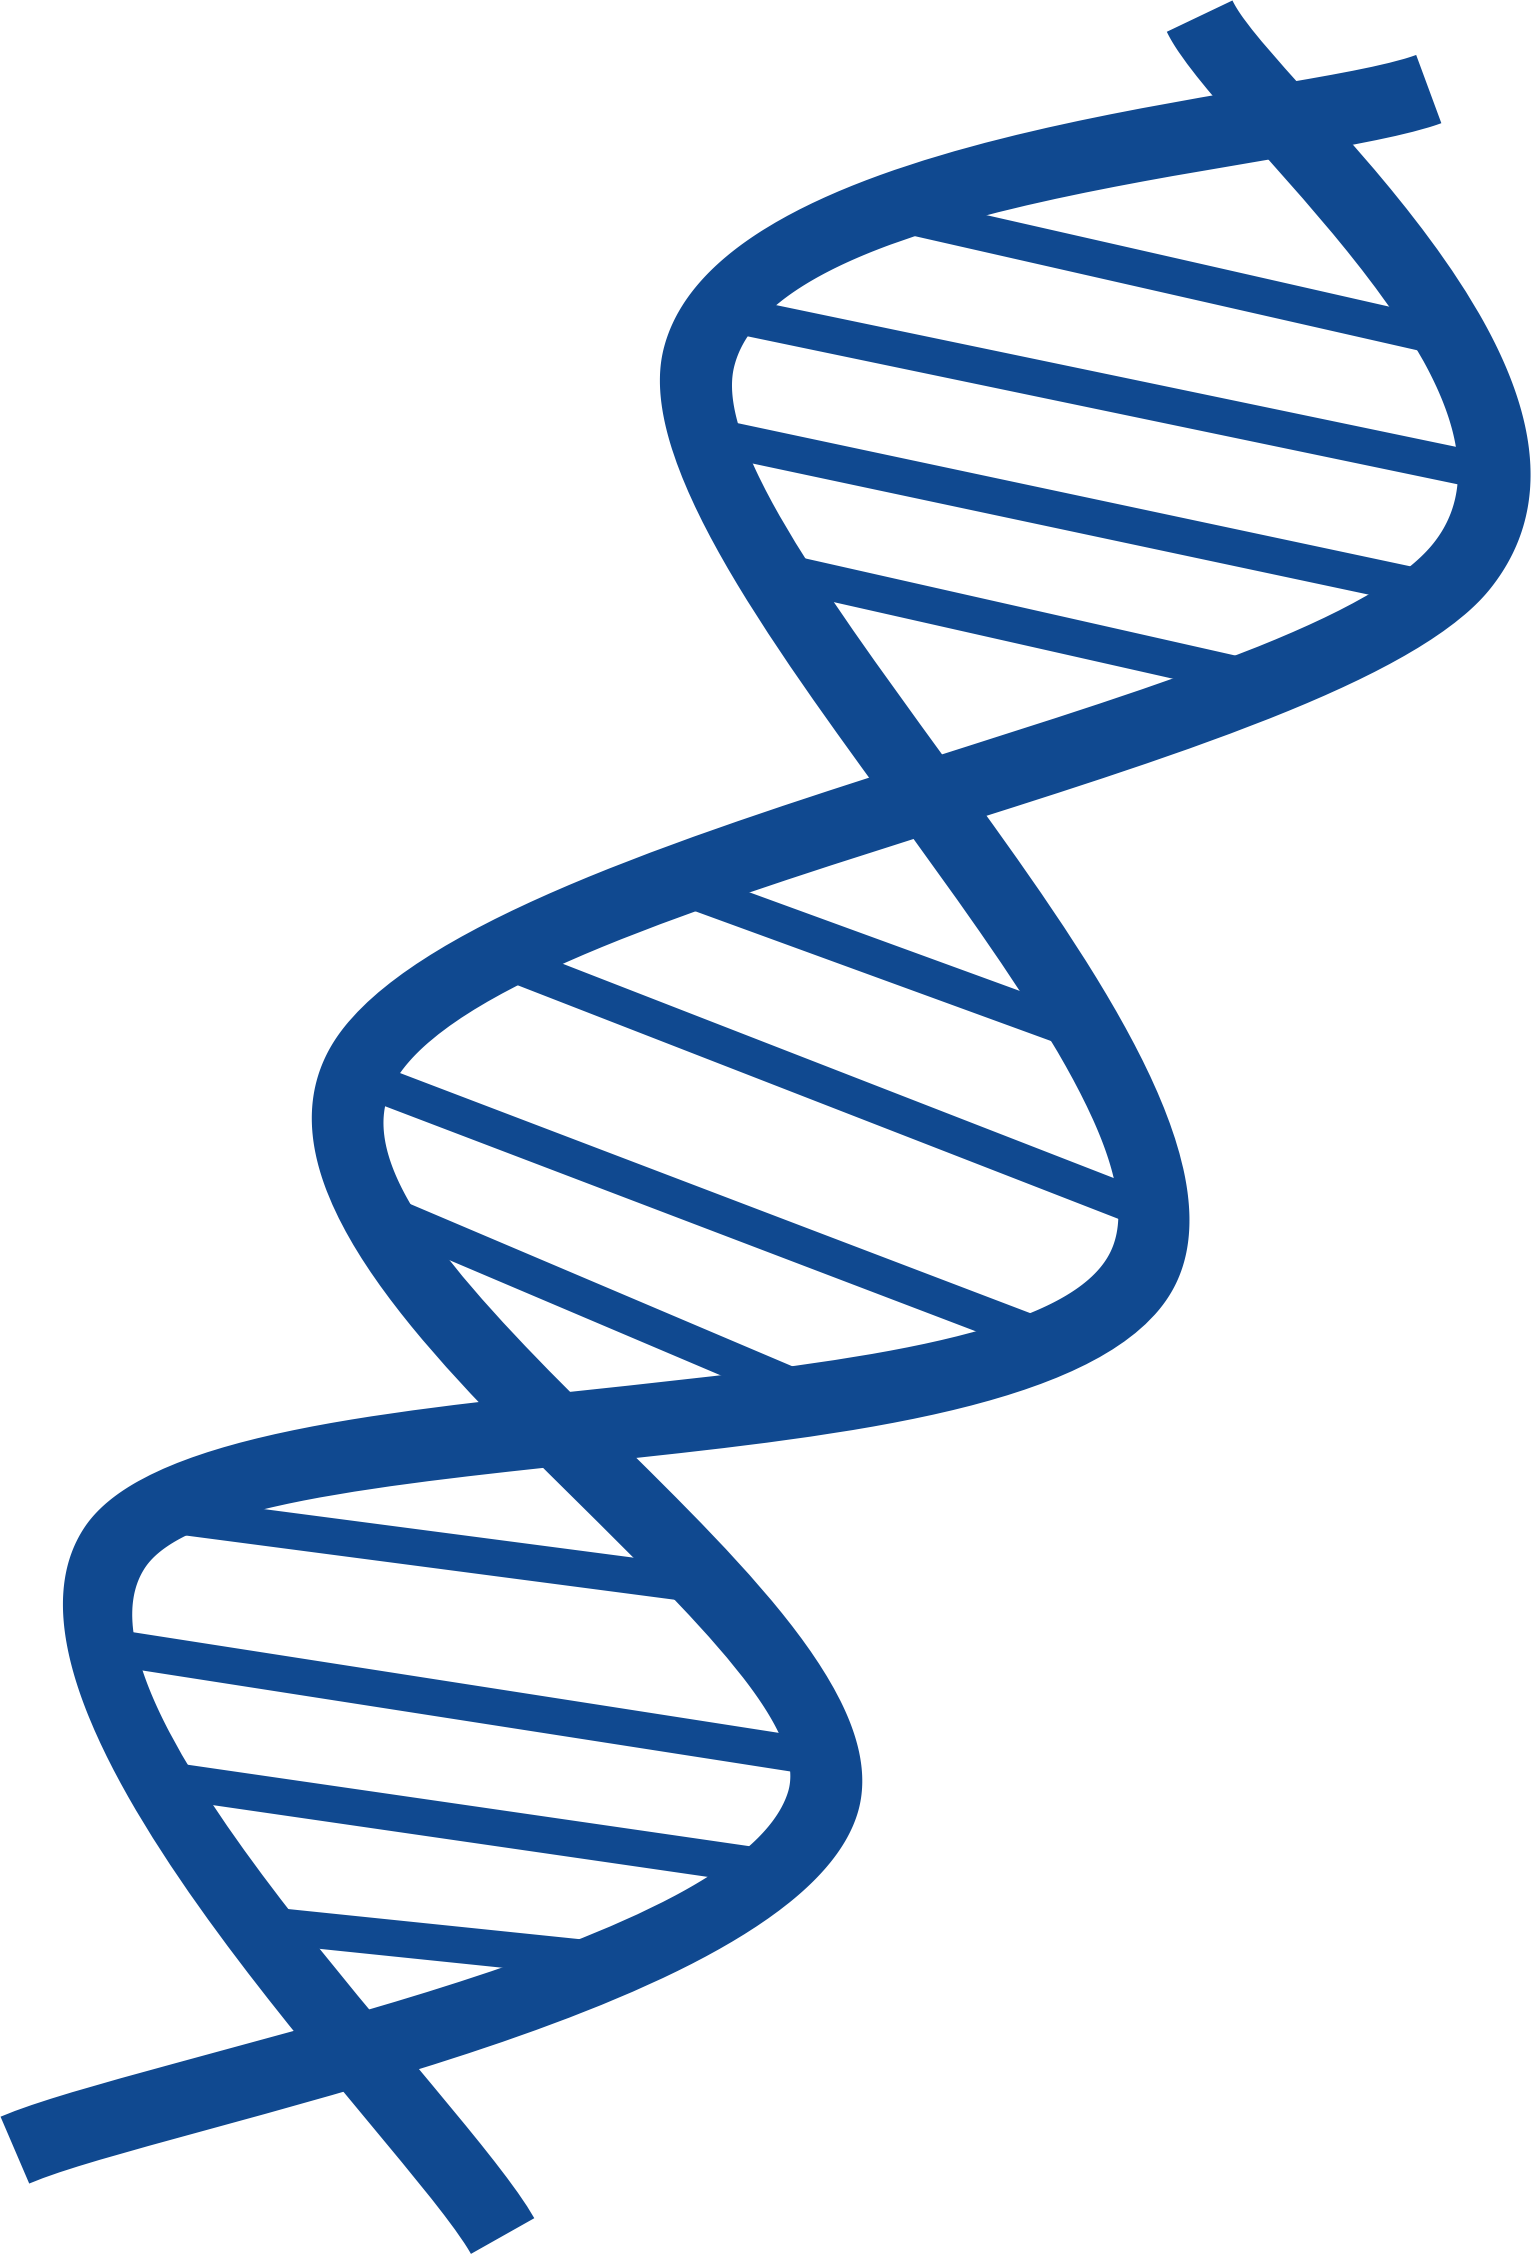 image free stock . Dna clipart